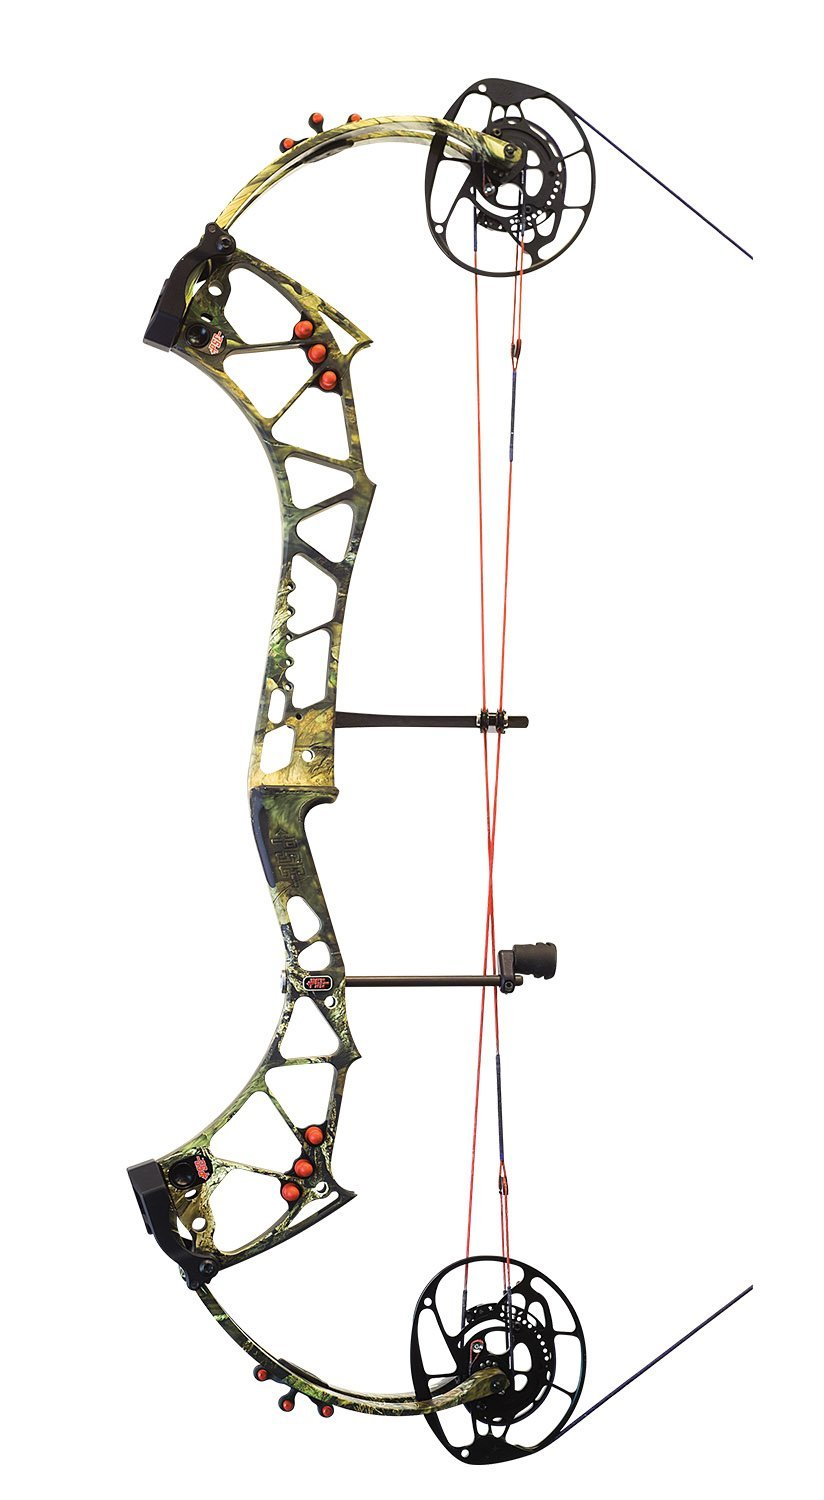 pse guide youth compound bow review